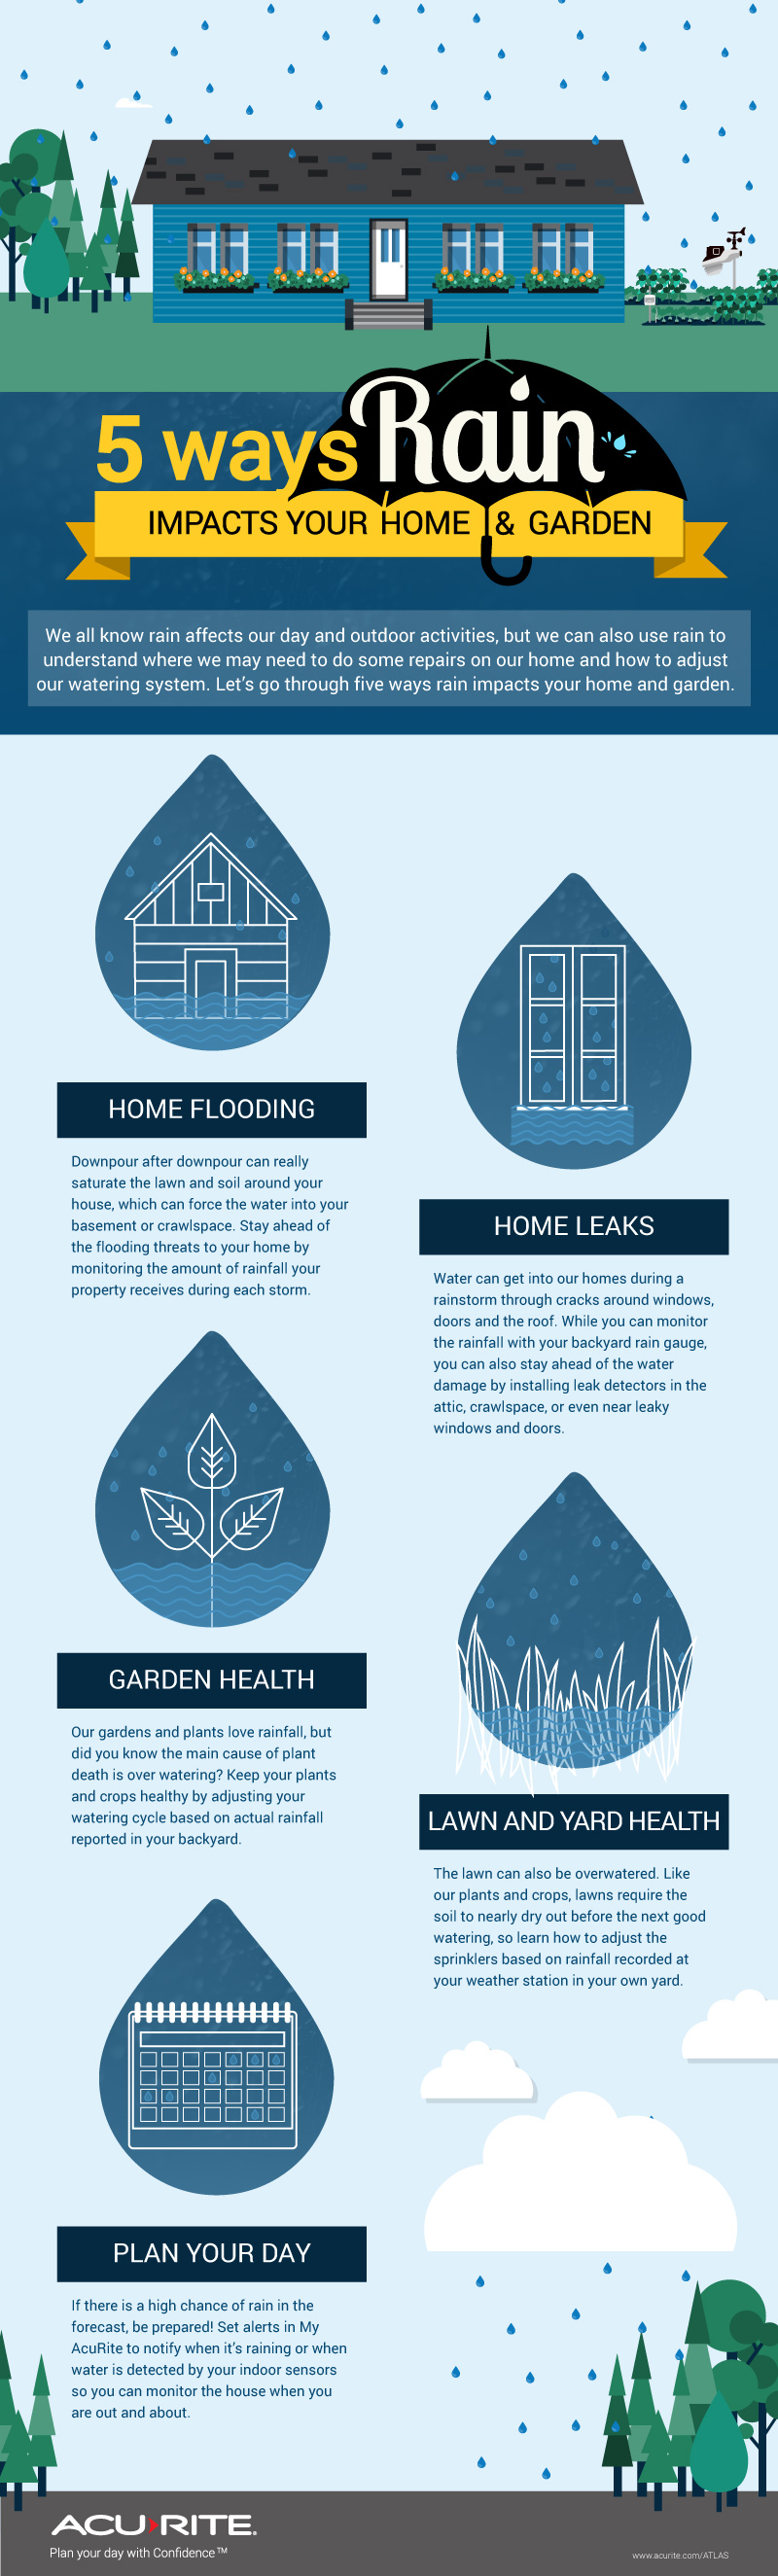 5 ways rain impacts your home and garden